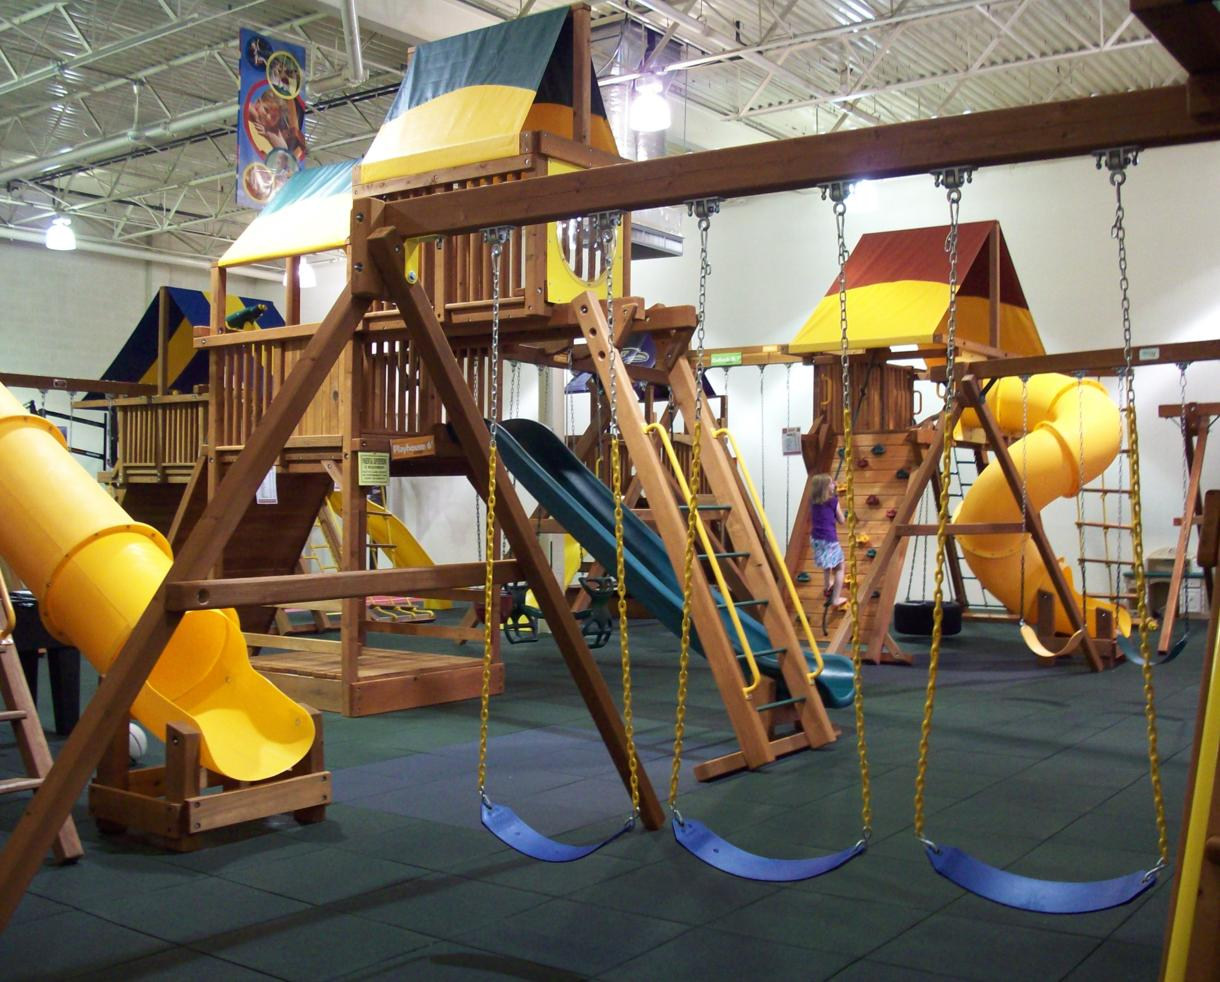 $17 for Indoor Fun 5-Pass at Play N' Learn's Playground Superstore - Columbia